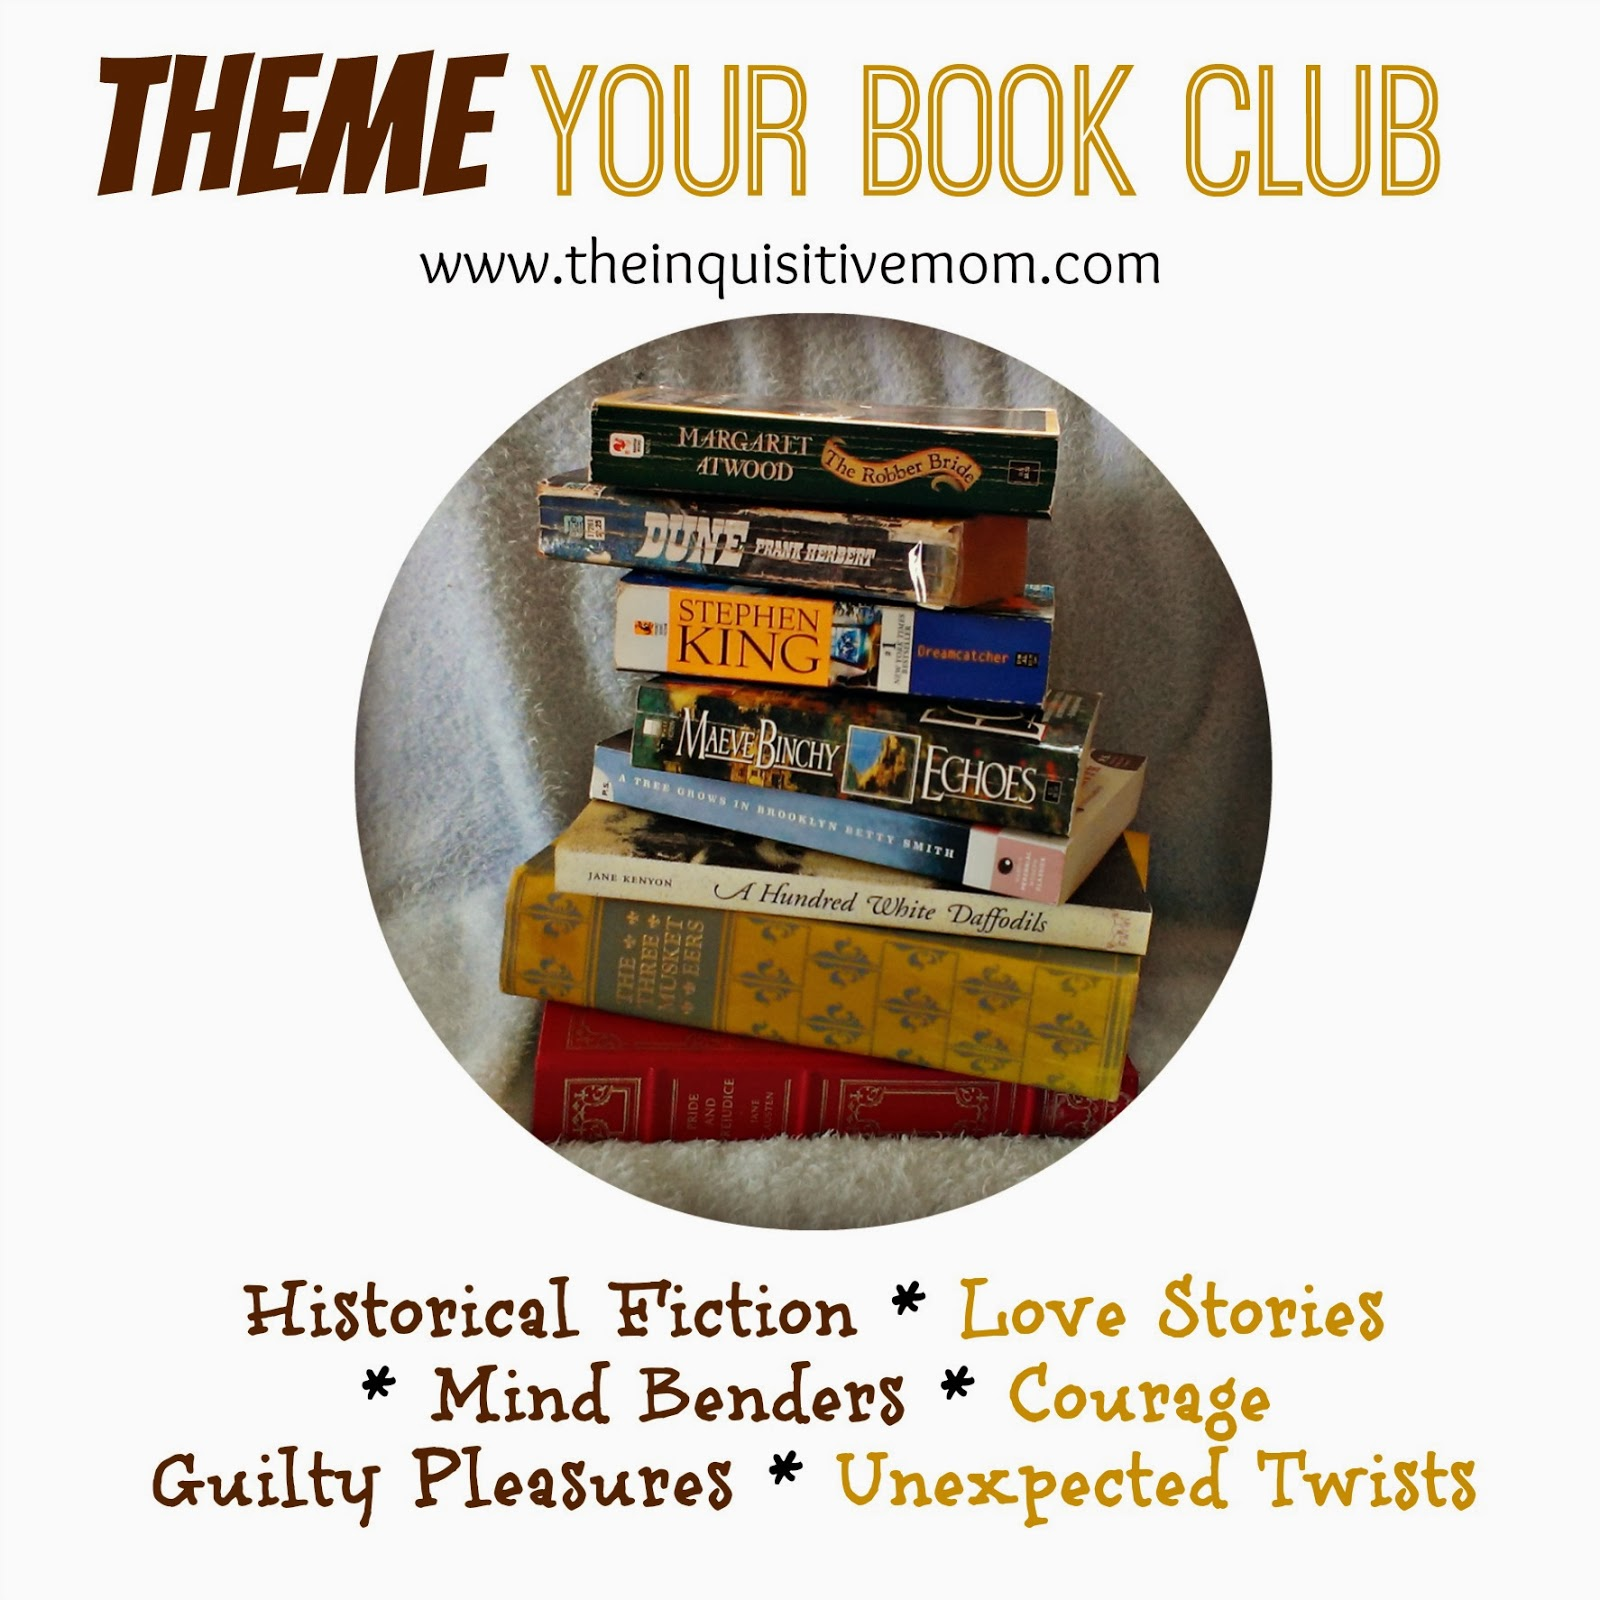 Theme Your Book Club